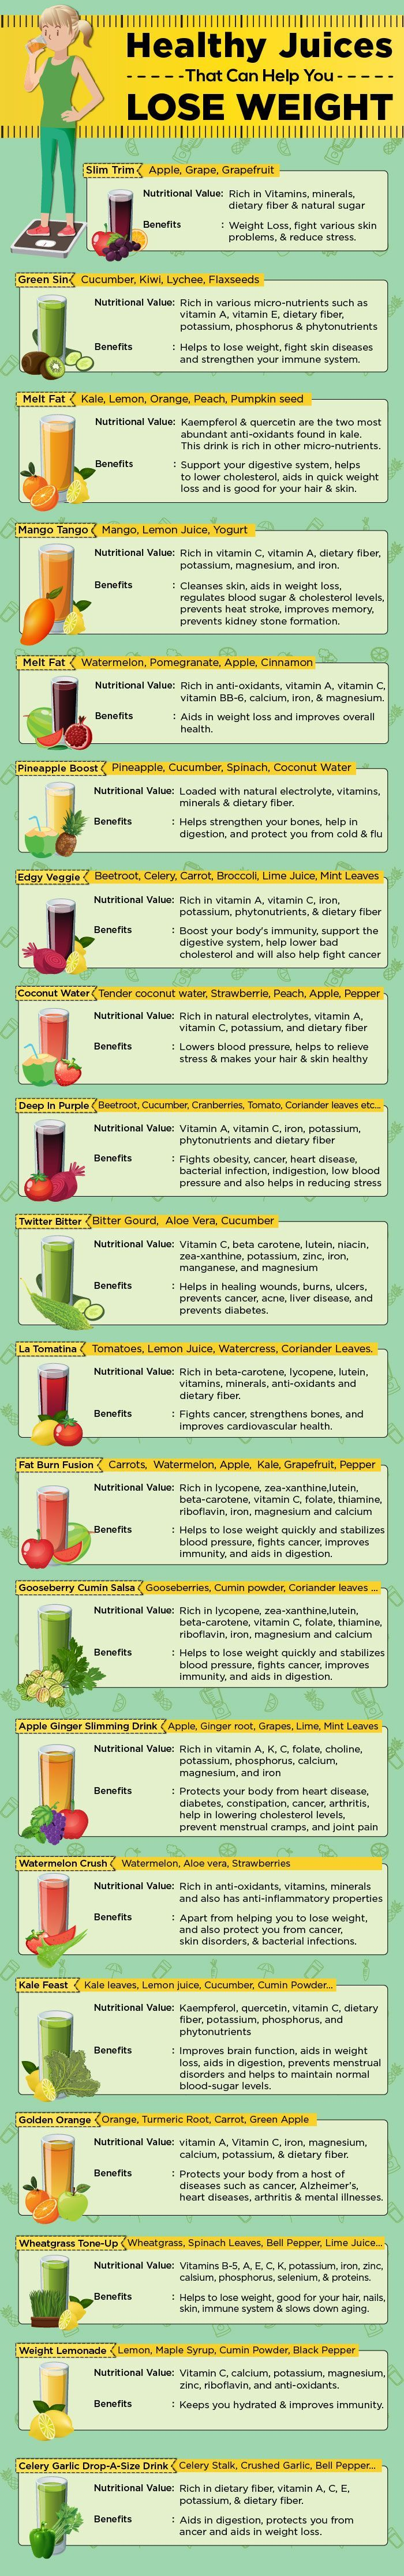 Juicing is the best option to lose weight as it offers all the essential nutrients by avoiding extra calories. Know the healthy juices for weight loss & include them in your diet.